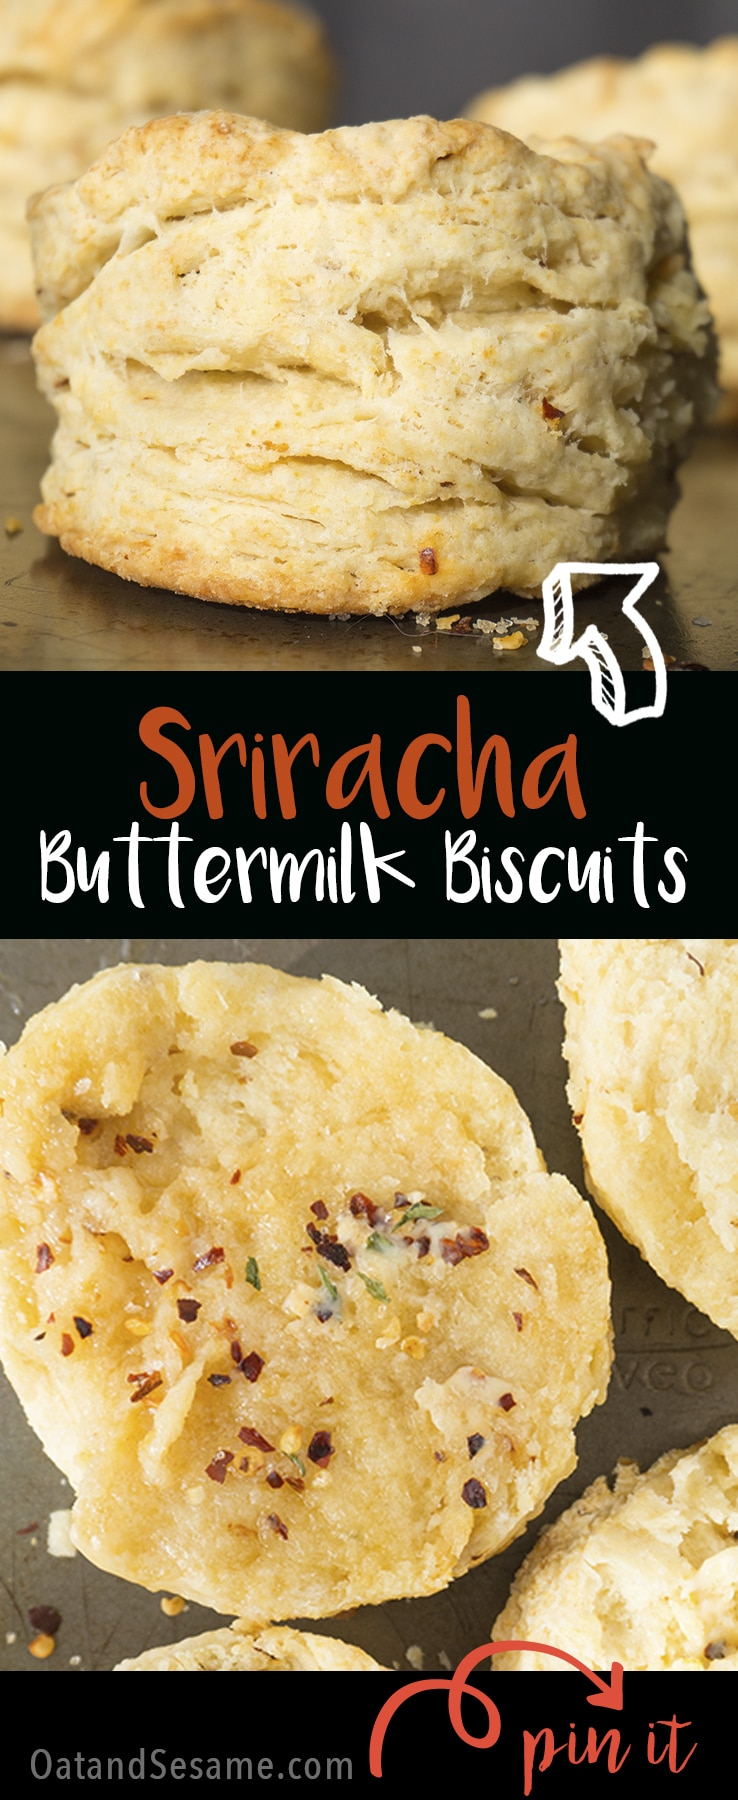 Spicy Sriracha Buttermilk Biscuits - breakfast with a kick! | SRIRACHA | BUTTERMILK | BISCUITS | SPICY | BREAKFAST |Recipe at OatandSesame.com